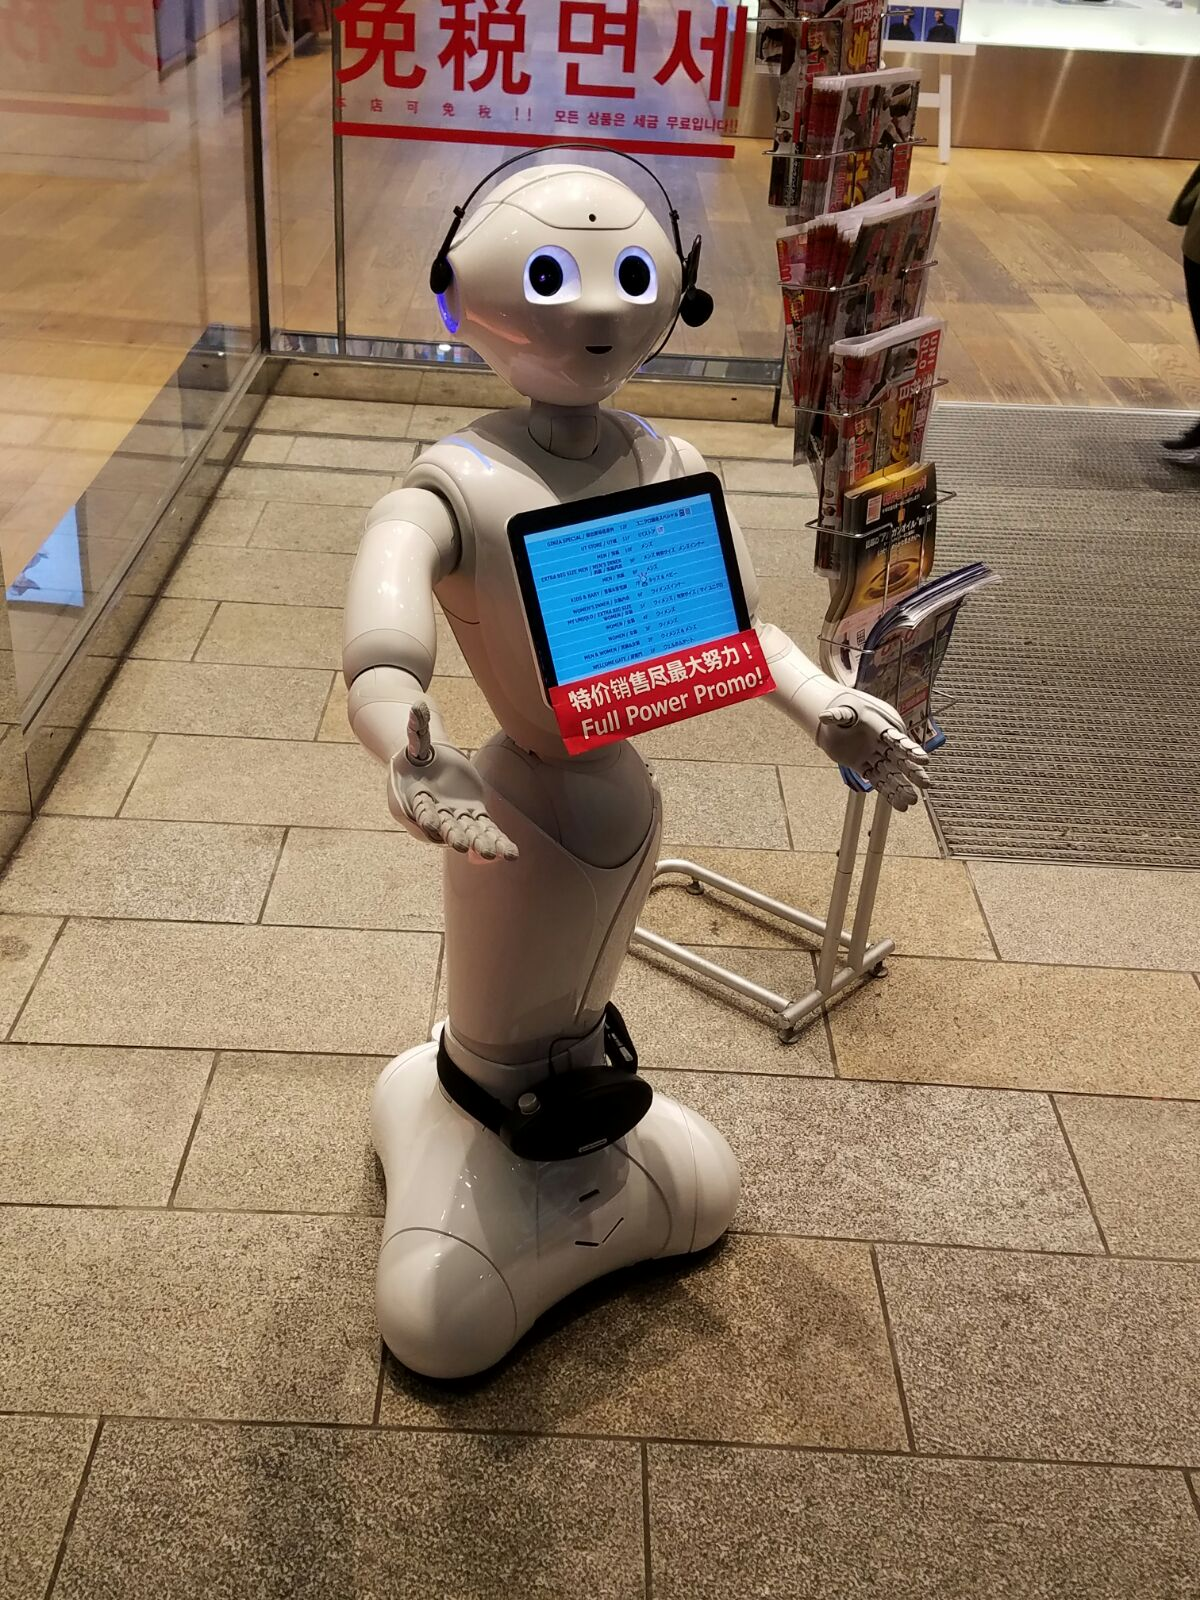 Robot in front of Uniqlo store